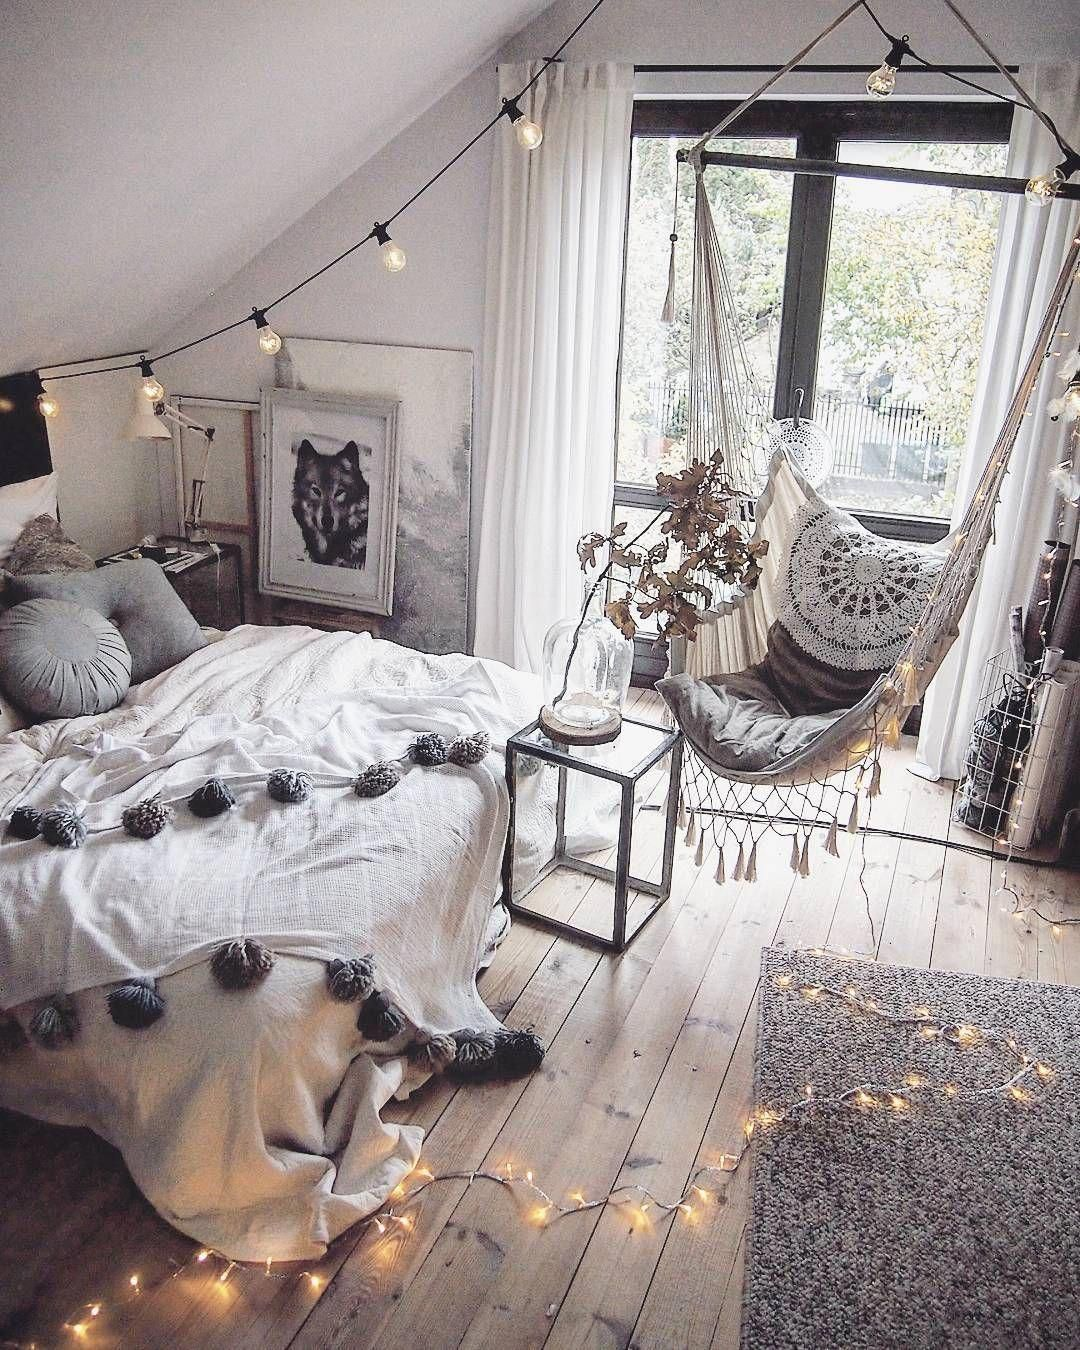 Cp9fi Noodle Soups Felt Hearts Shabby Cottage Grunge Room Morocco